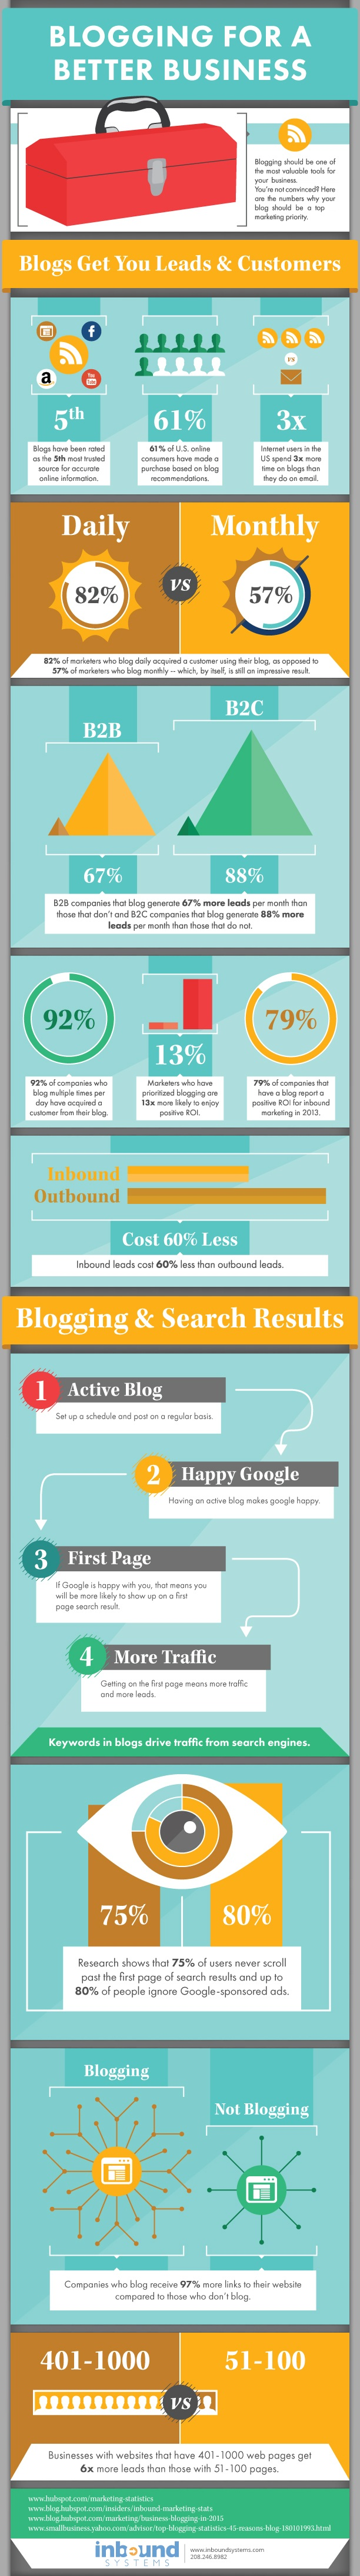 15 Crazy Stats About Blogging and Content Marketing [Infographic] | Social Media Today